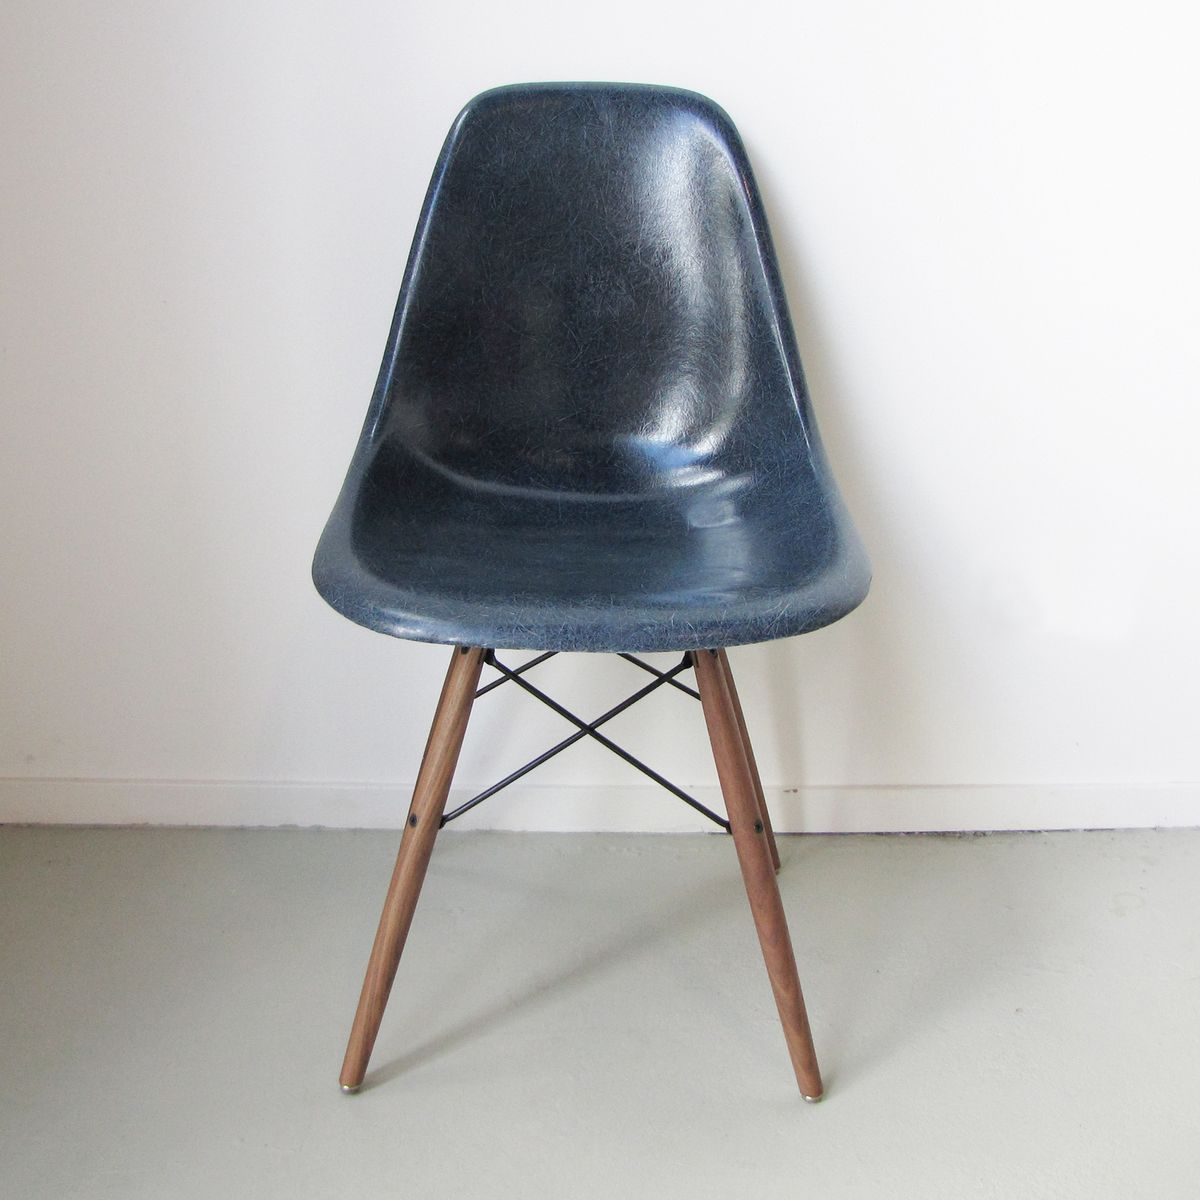 DSW Chair by Charles & Ray Eames for Herman Miller USA